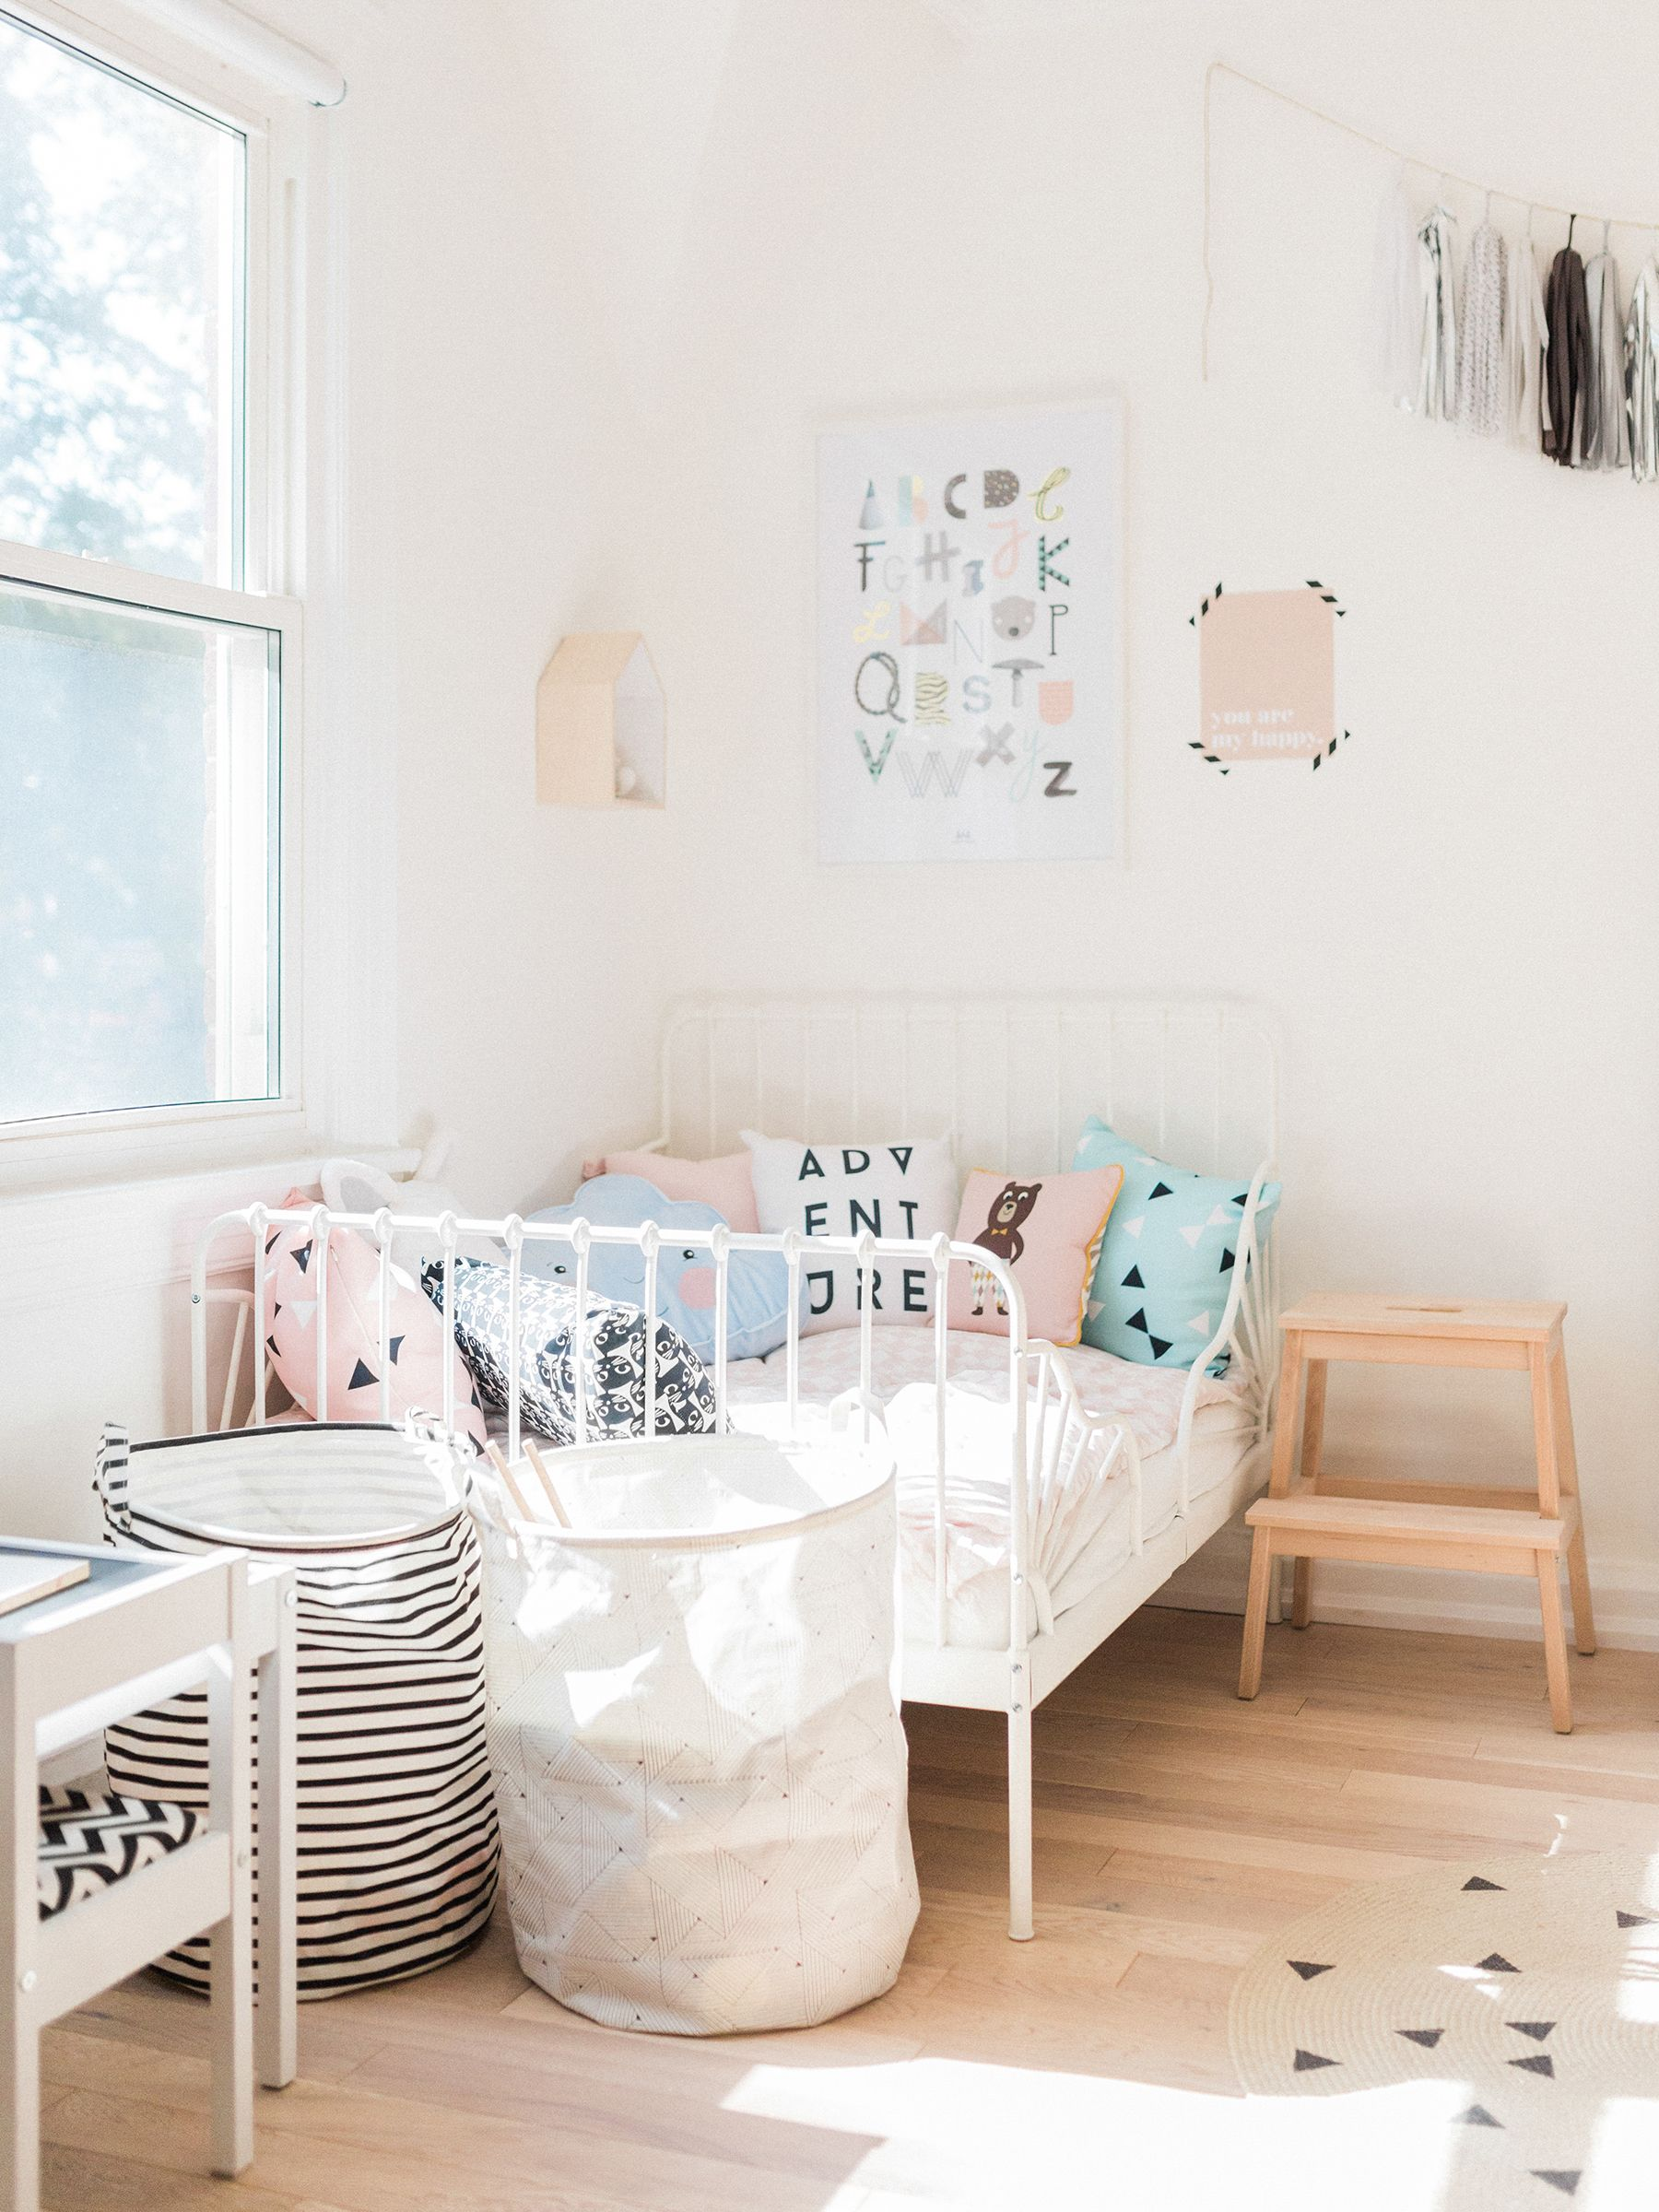 Ikea Toddler Room scandinavian shared kids room - light-filled, pastel baby +